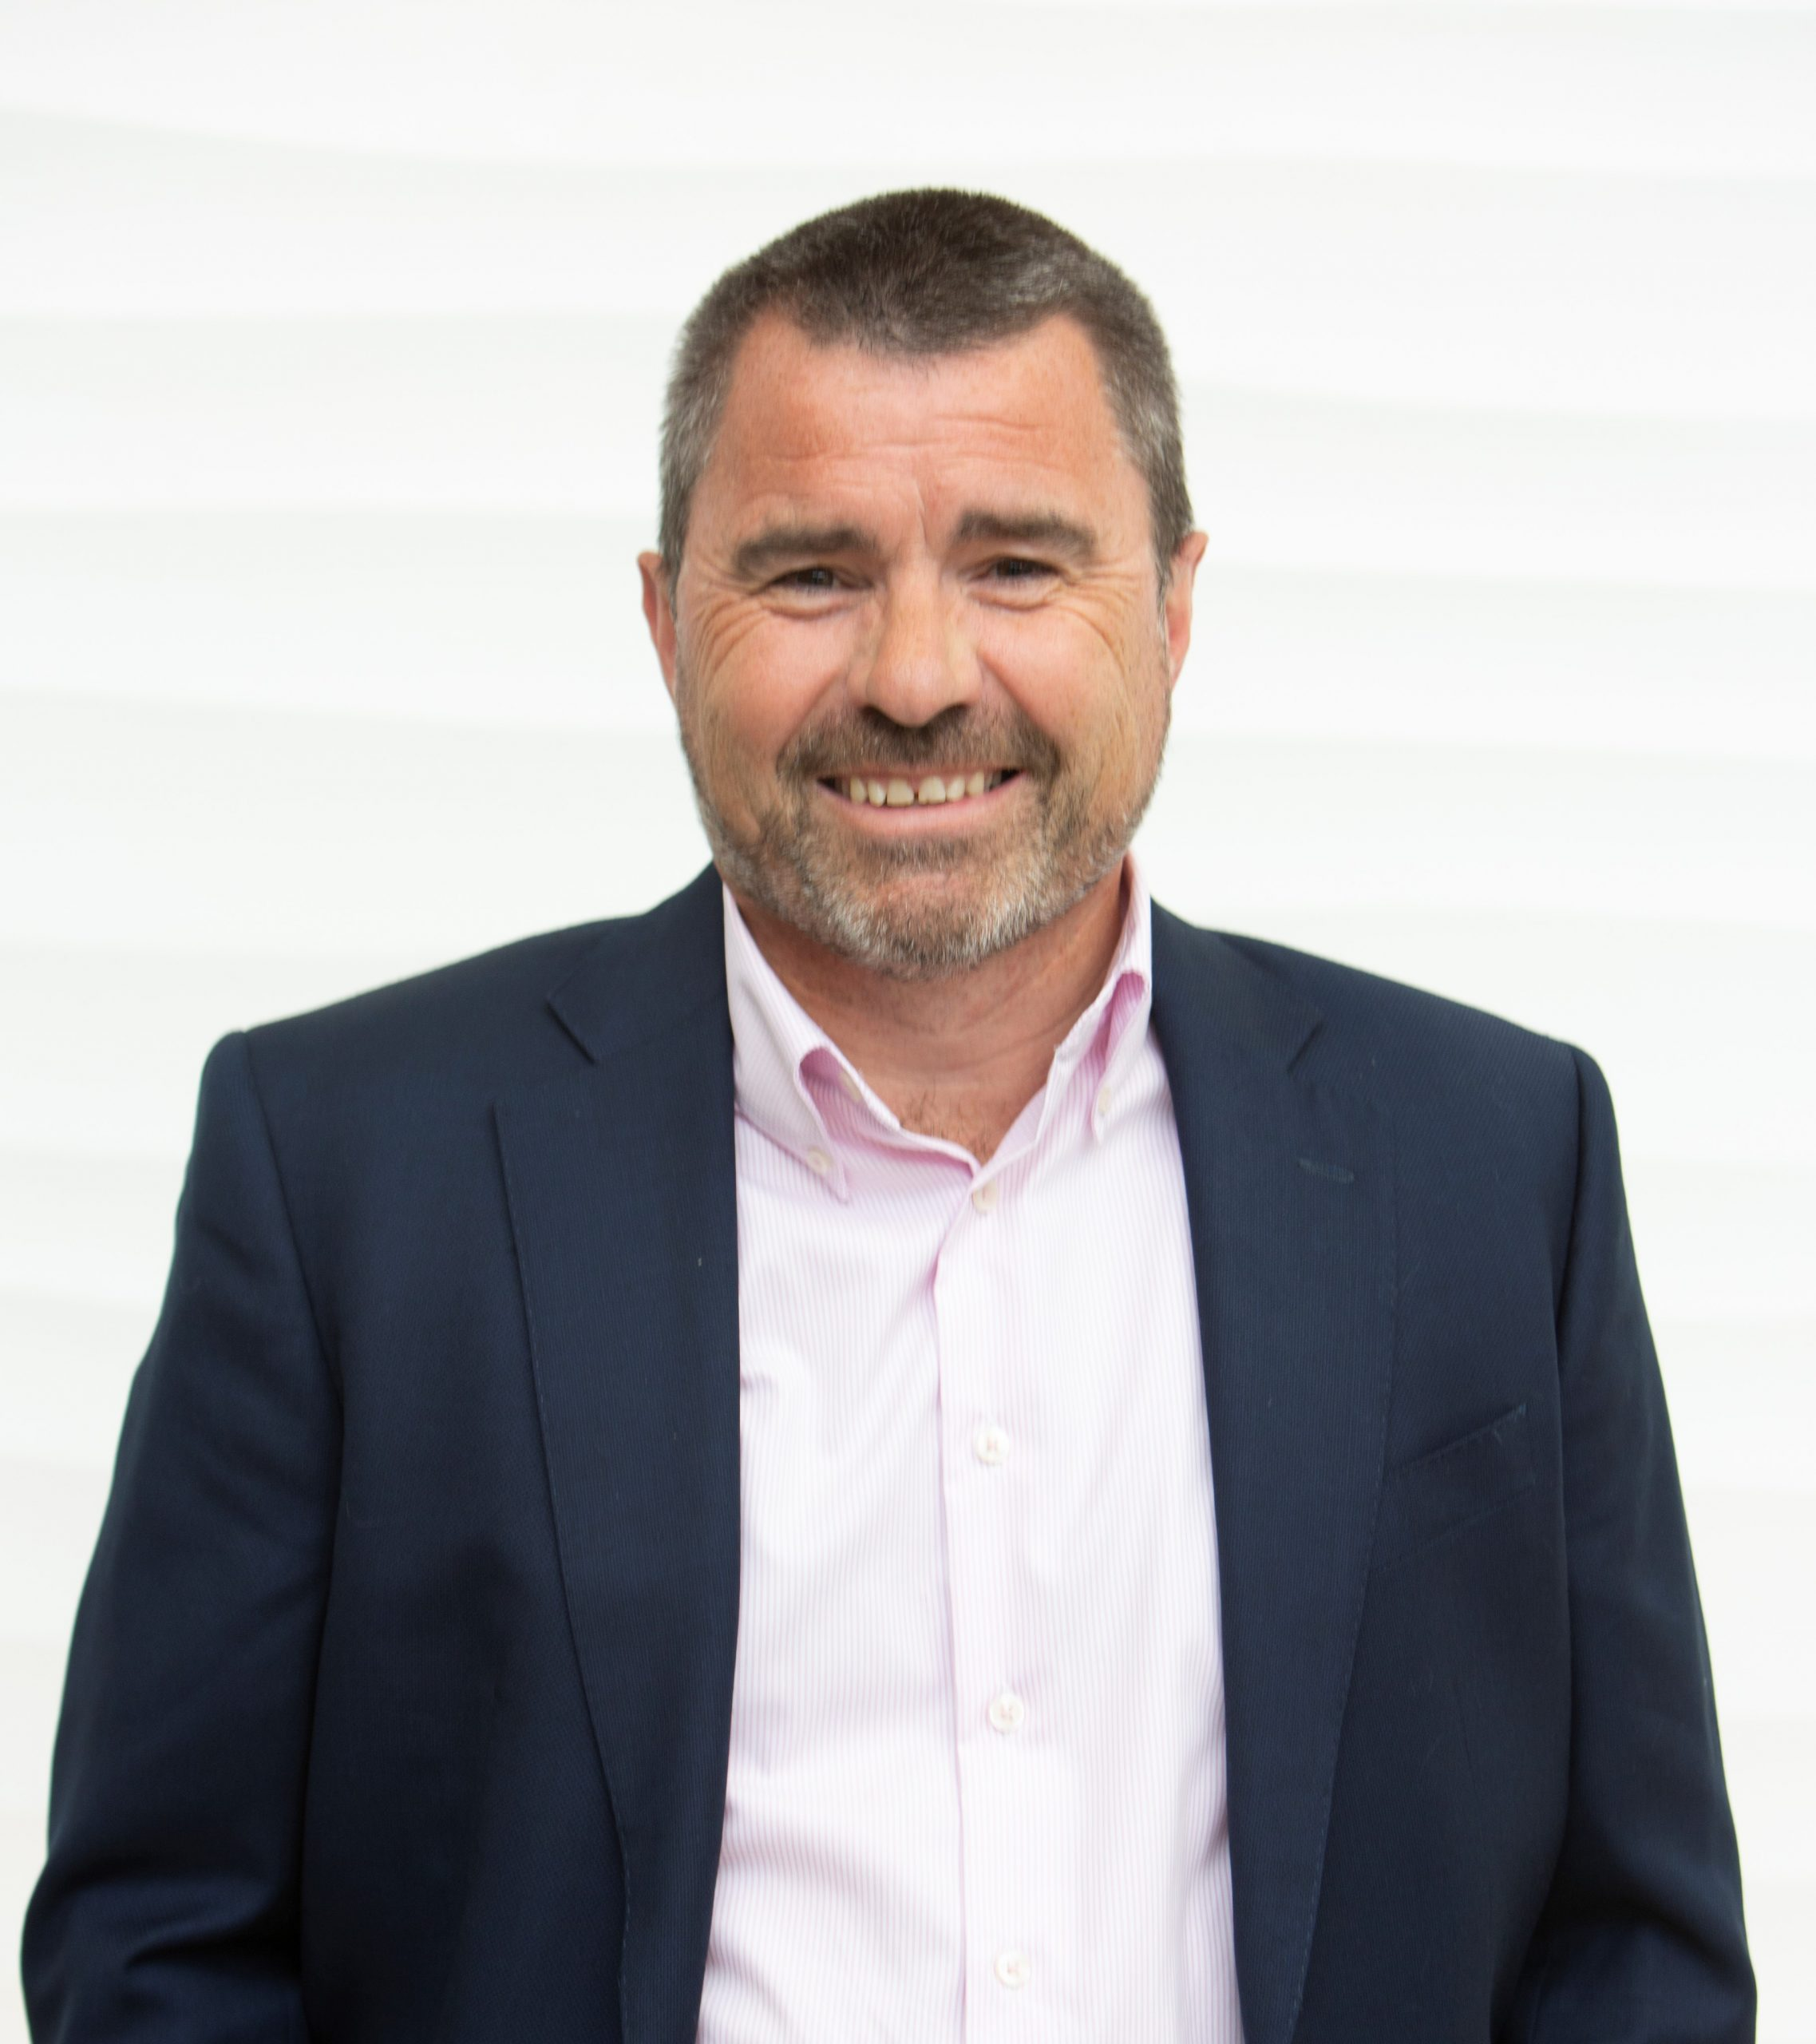 Simon Gallimore appointed as EDAM Group CEO to spearhead next stage of growth